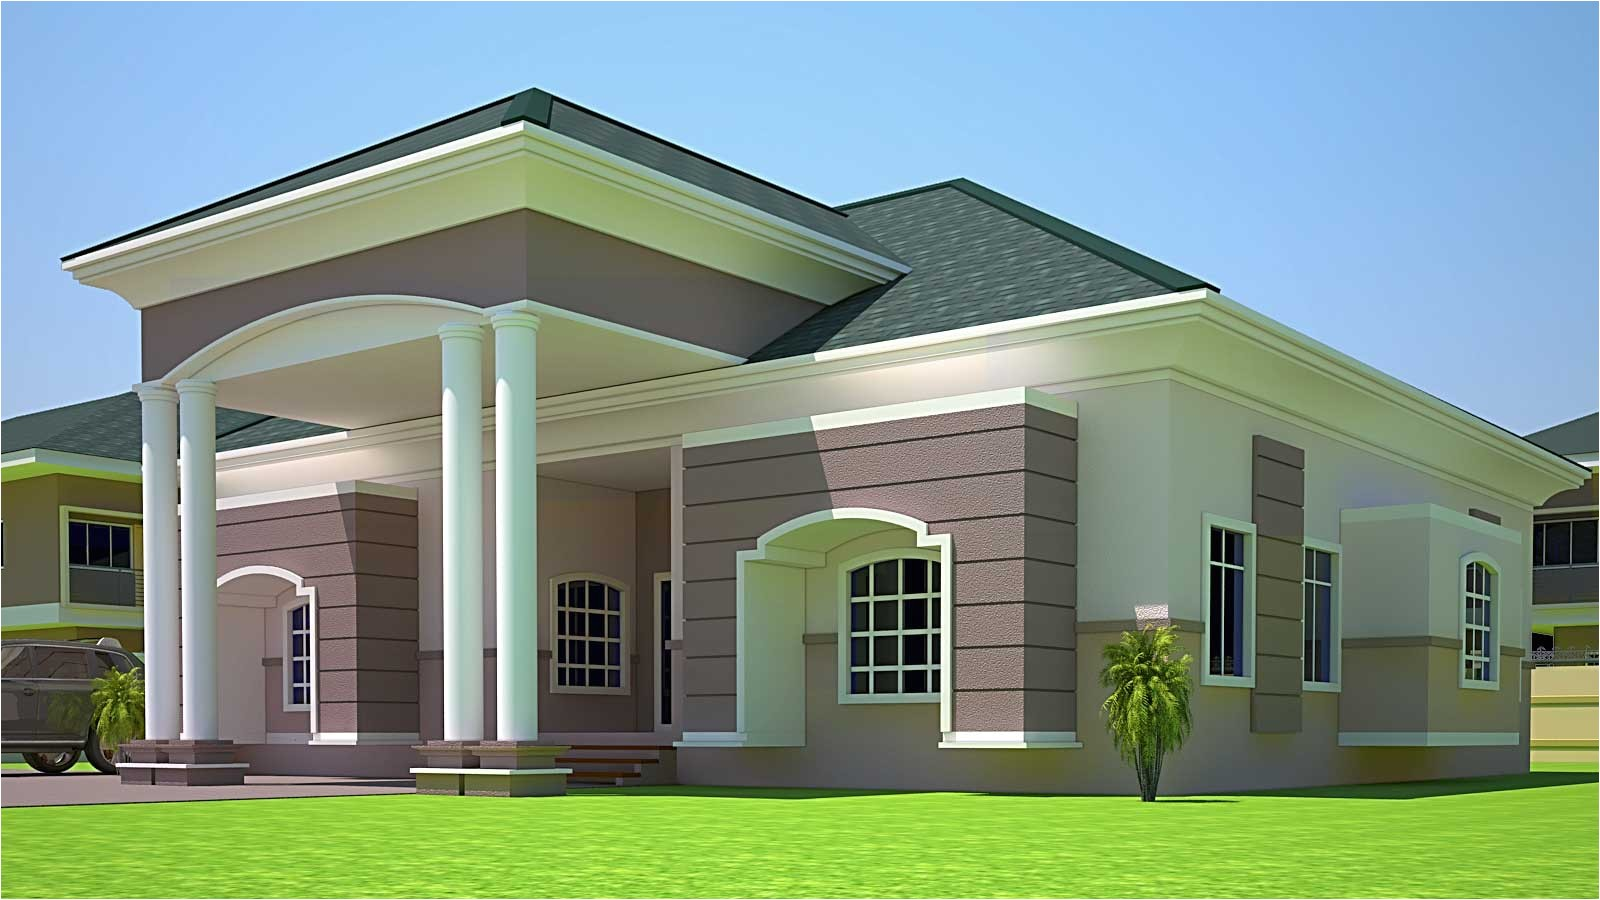 Ghana Homes Plans House Plans Ghana Holla 4 Bedroom House Plan In Ghana